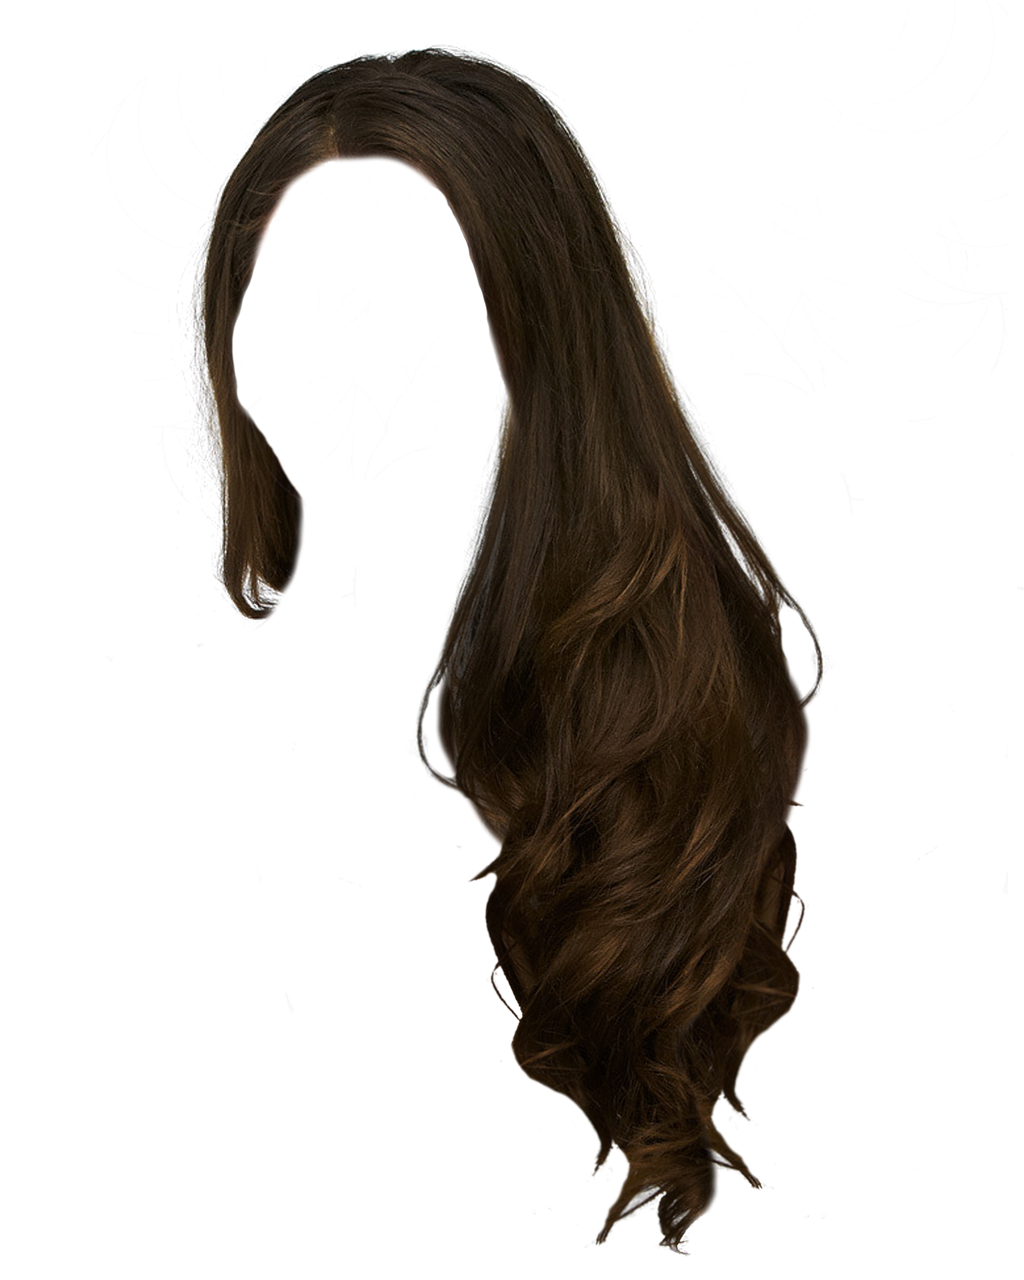 Png Hair 12 By Moonglowlilly On Deviantart